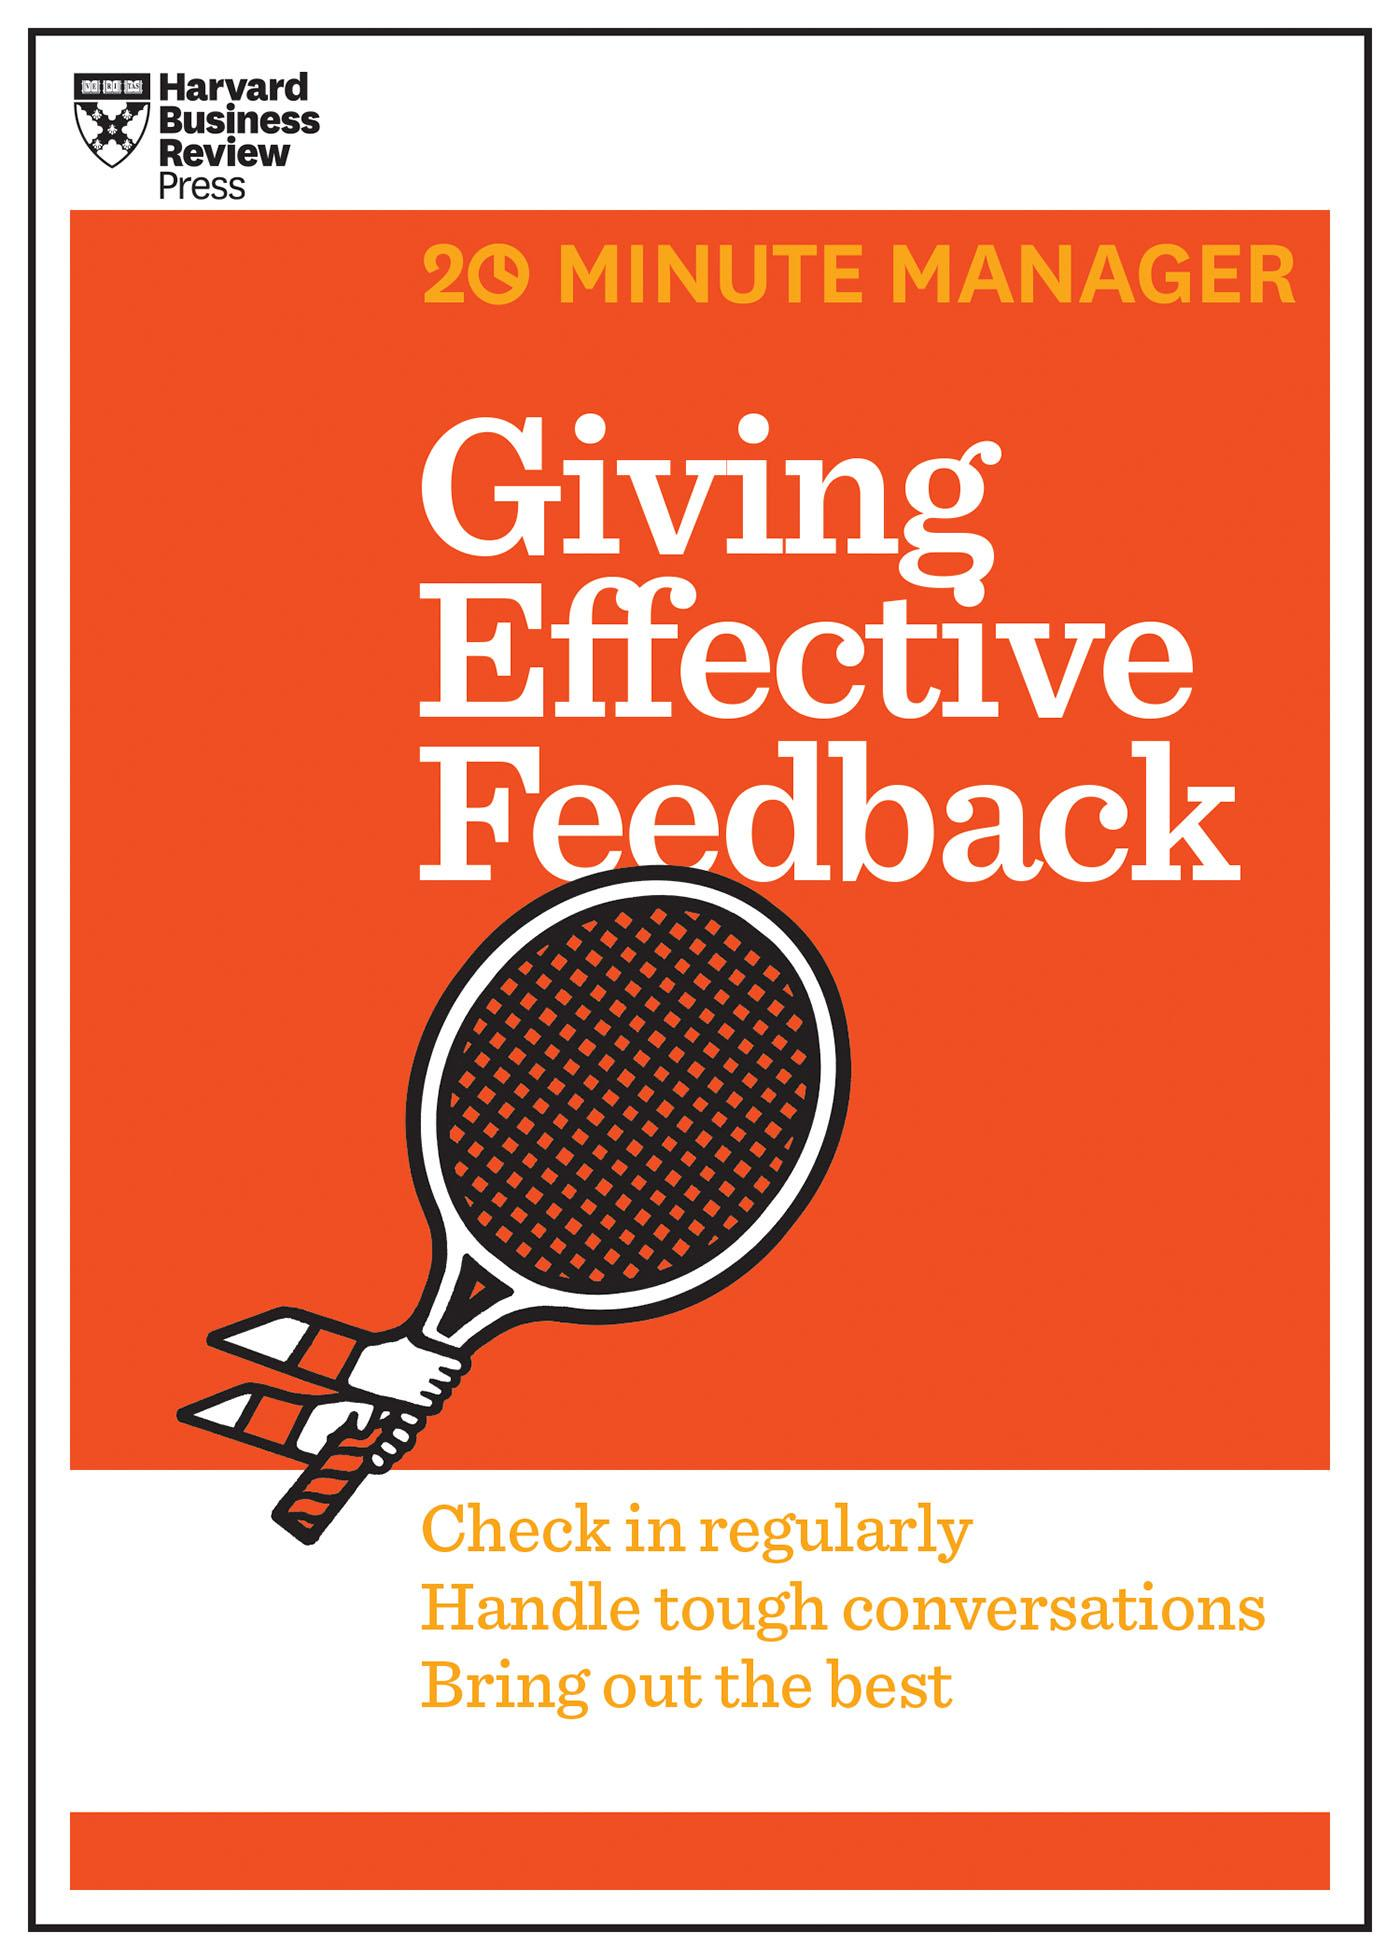 Harvard business review on communicating effectively ebook best deal booko comparing prices for giving effective feedback hbr 20 minute ebook published october 2014 by harvard fandeluxe Image collections